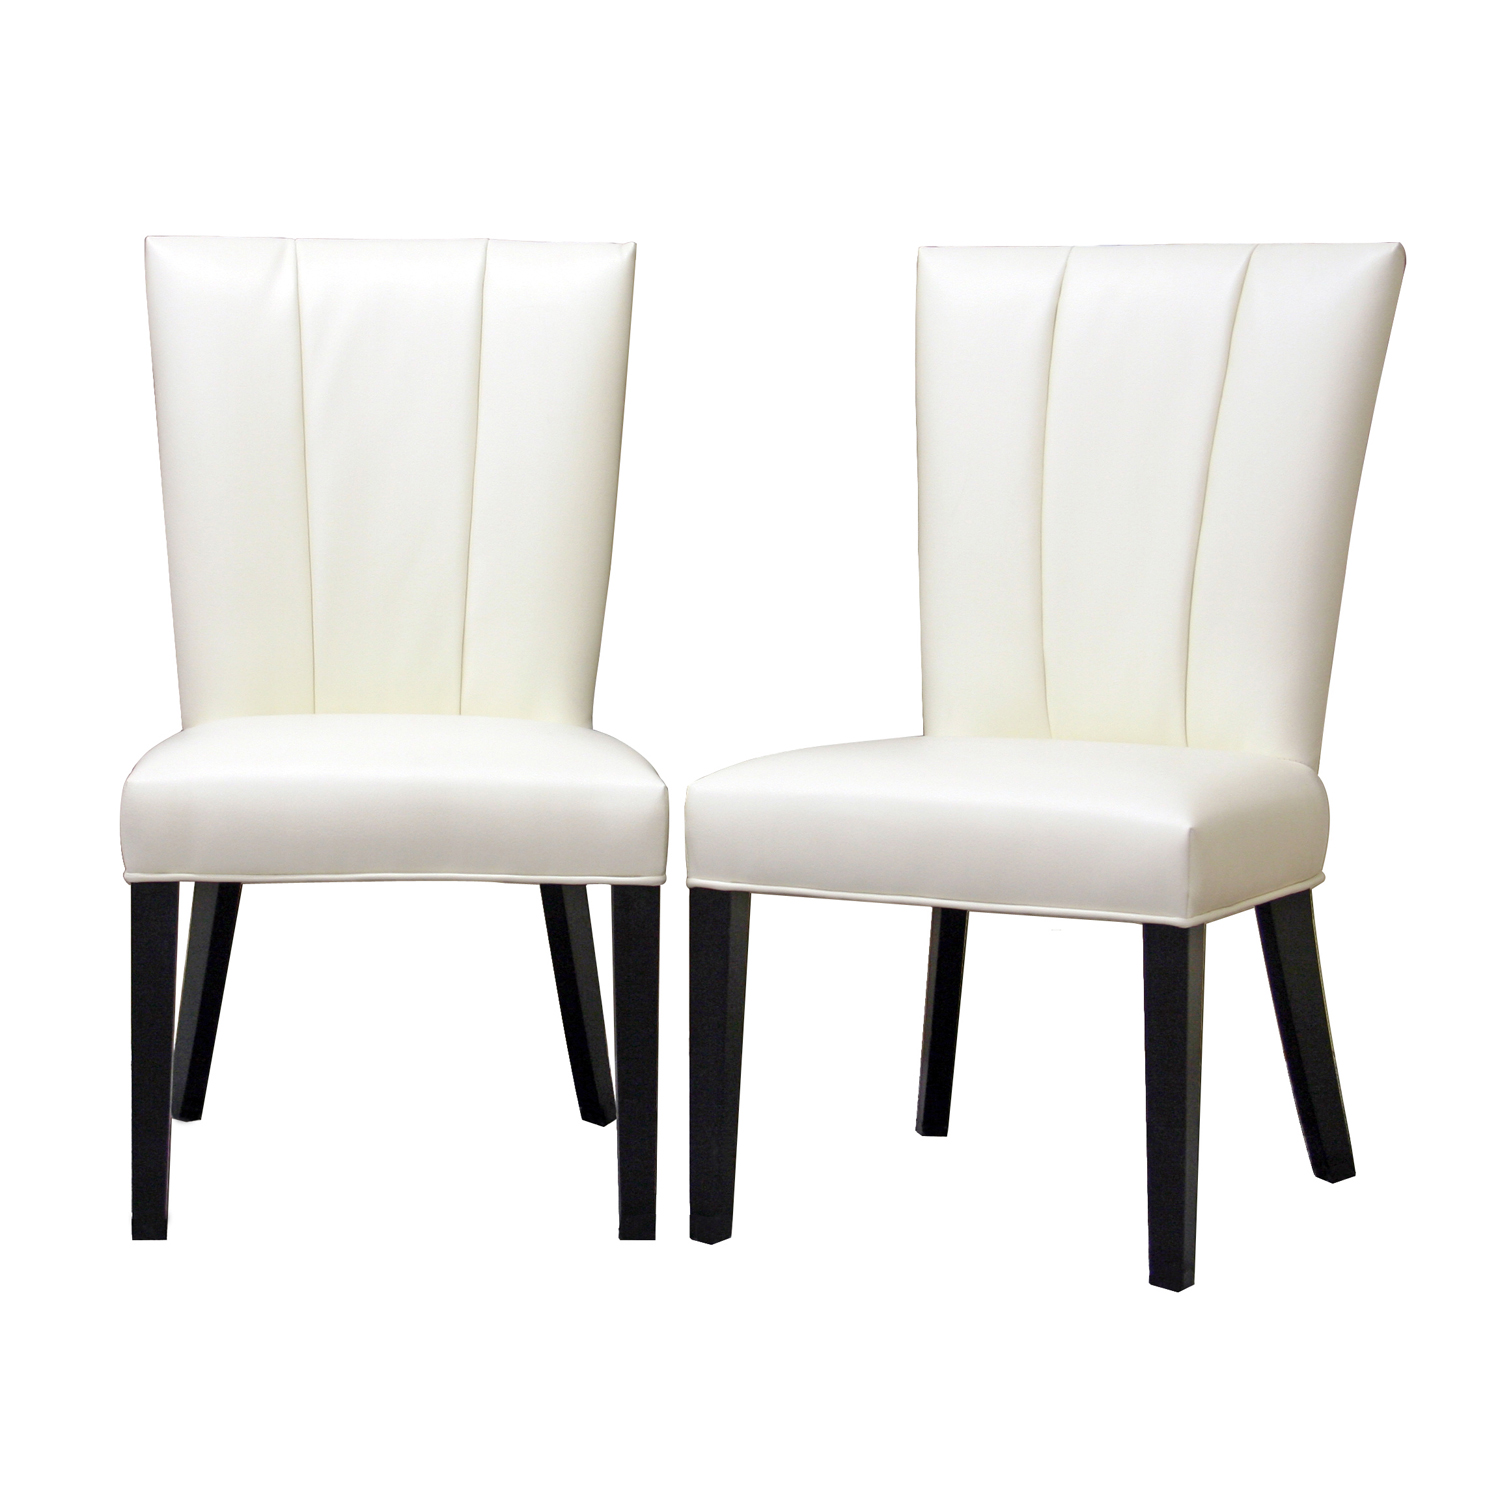 Furniture Dining Room Furniture Dining Chair White